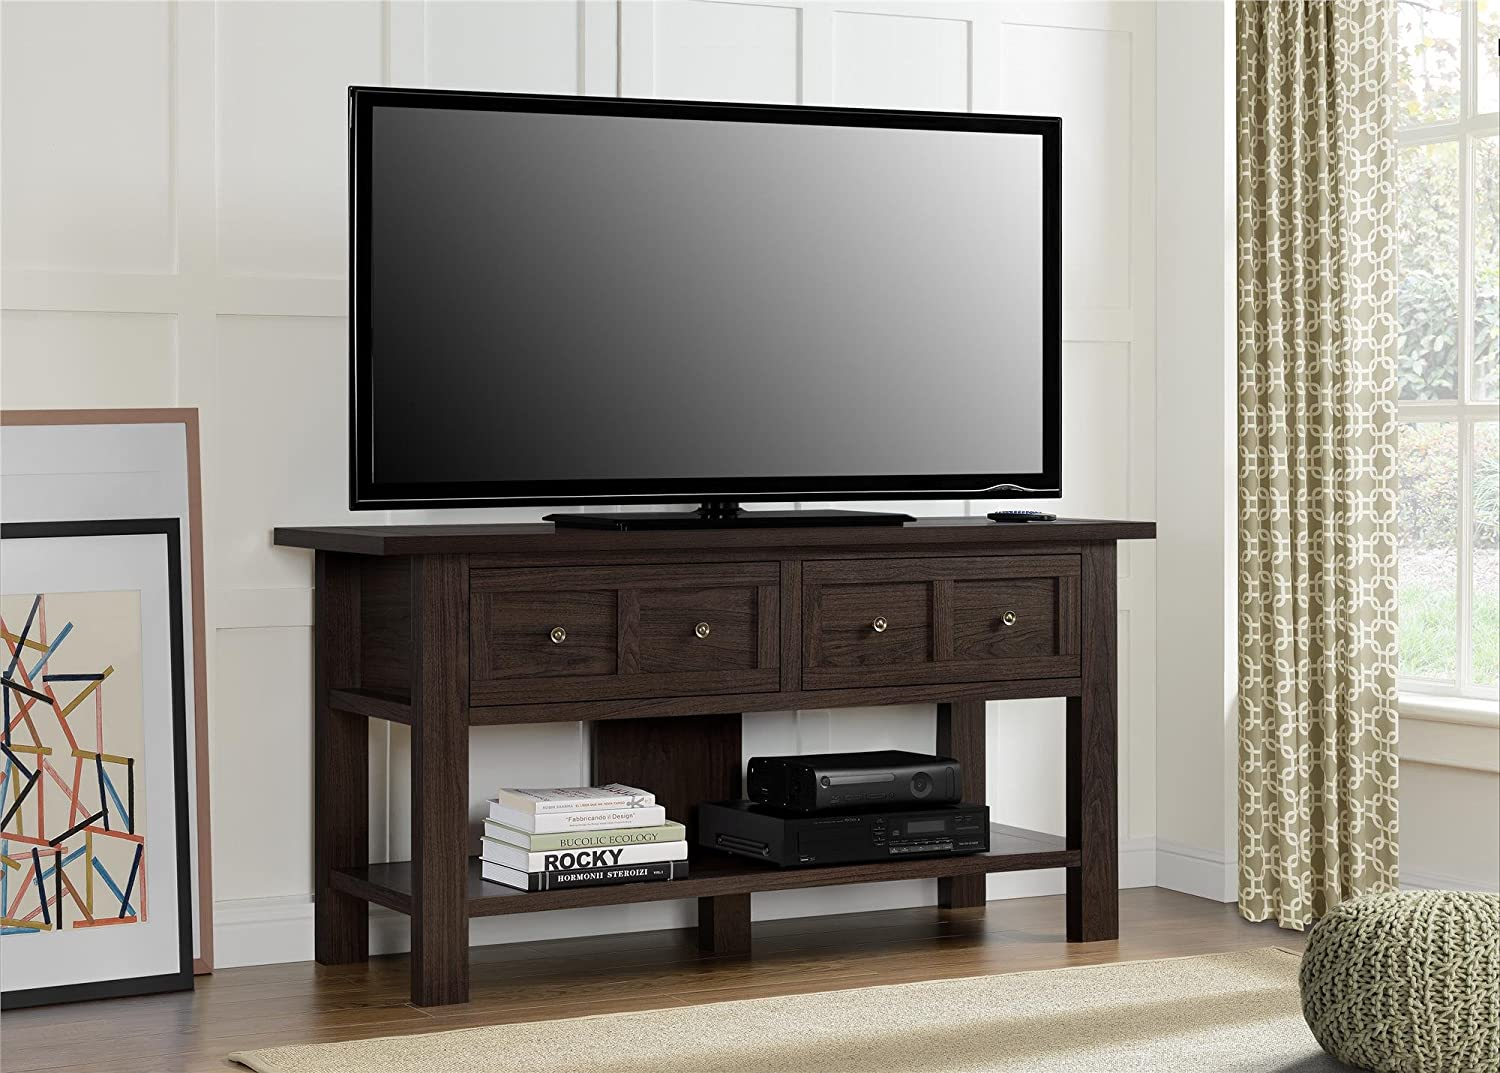 Amazon.com: Ameriwood Home Pillars Apothecary TV Stand for TVs up to ...